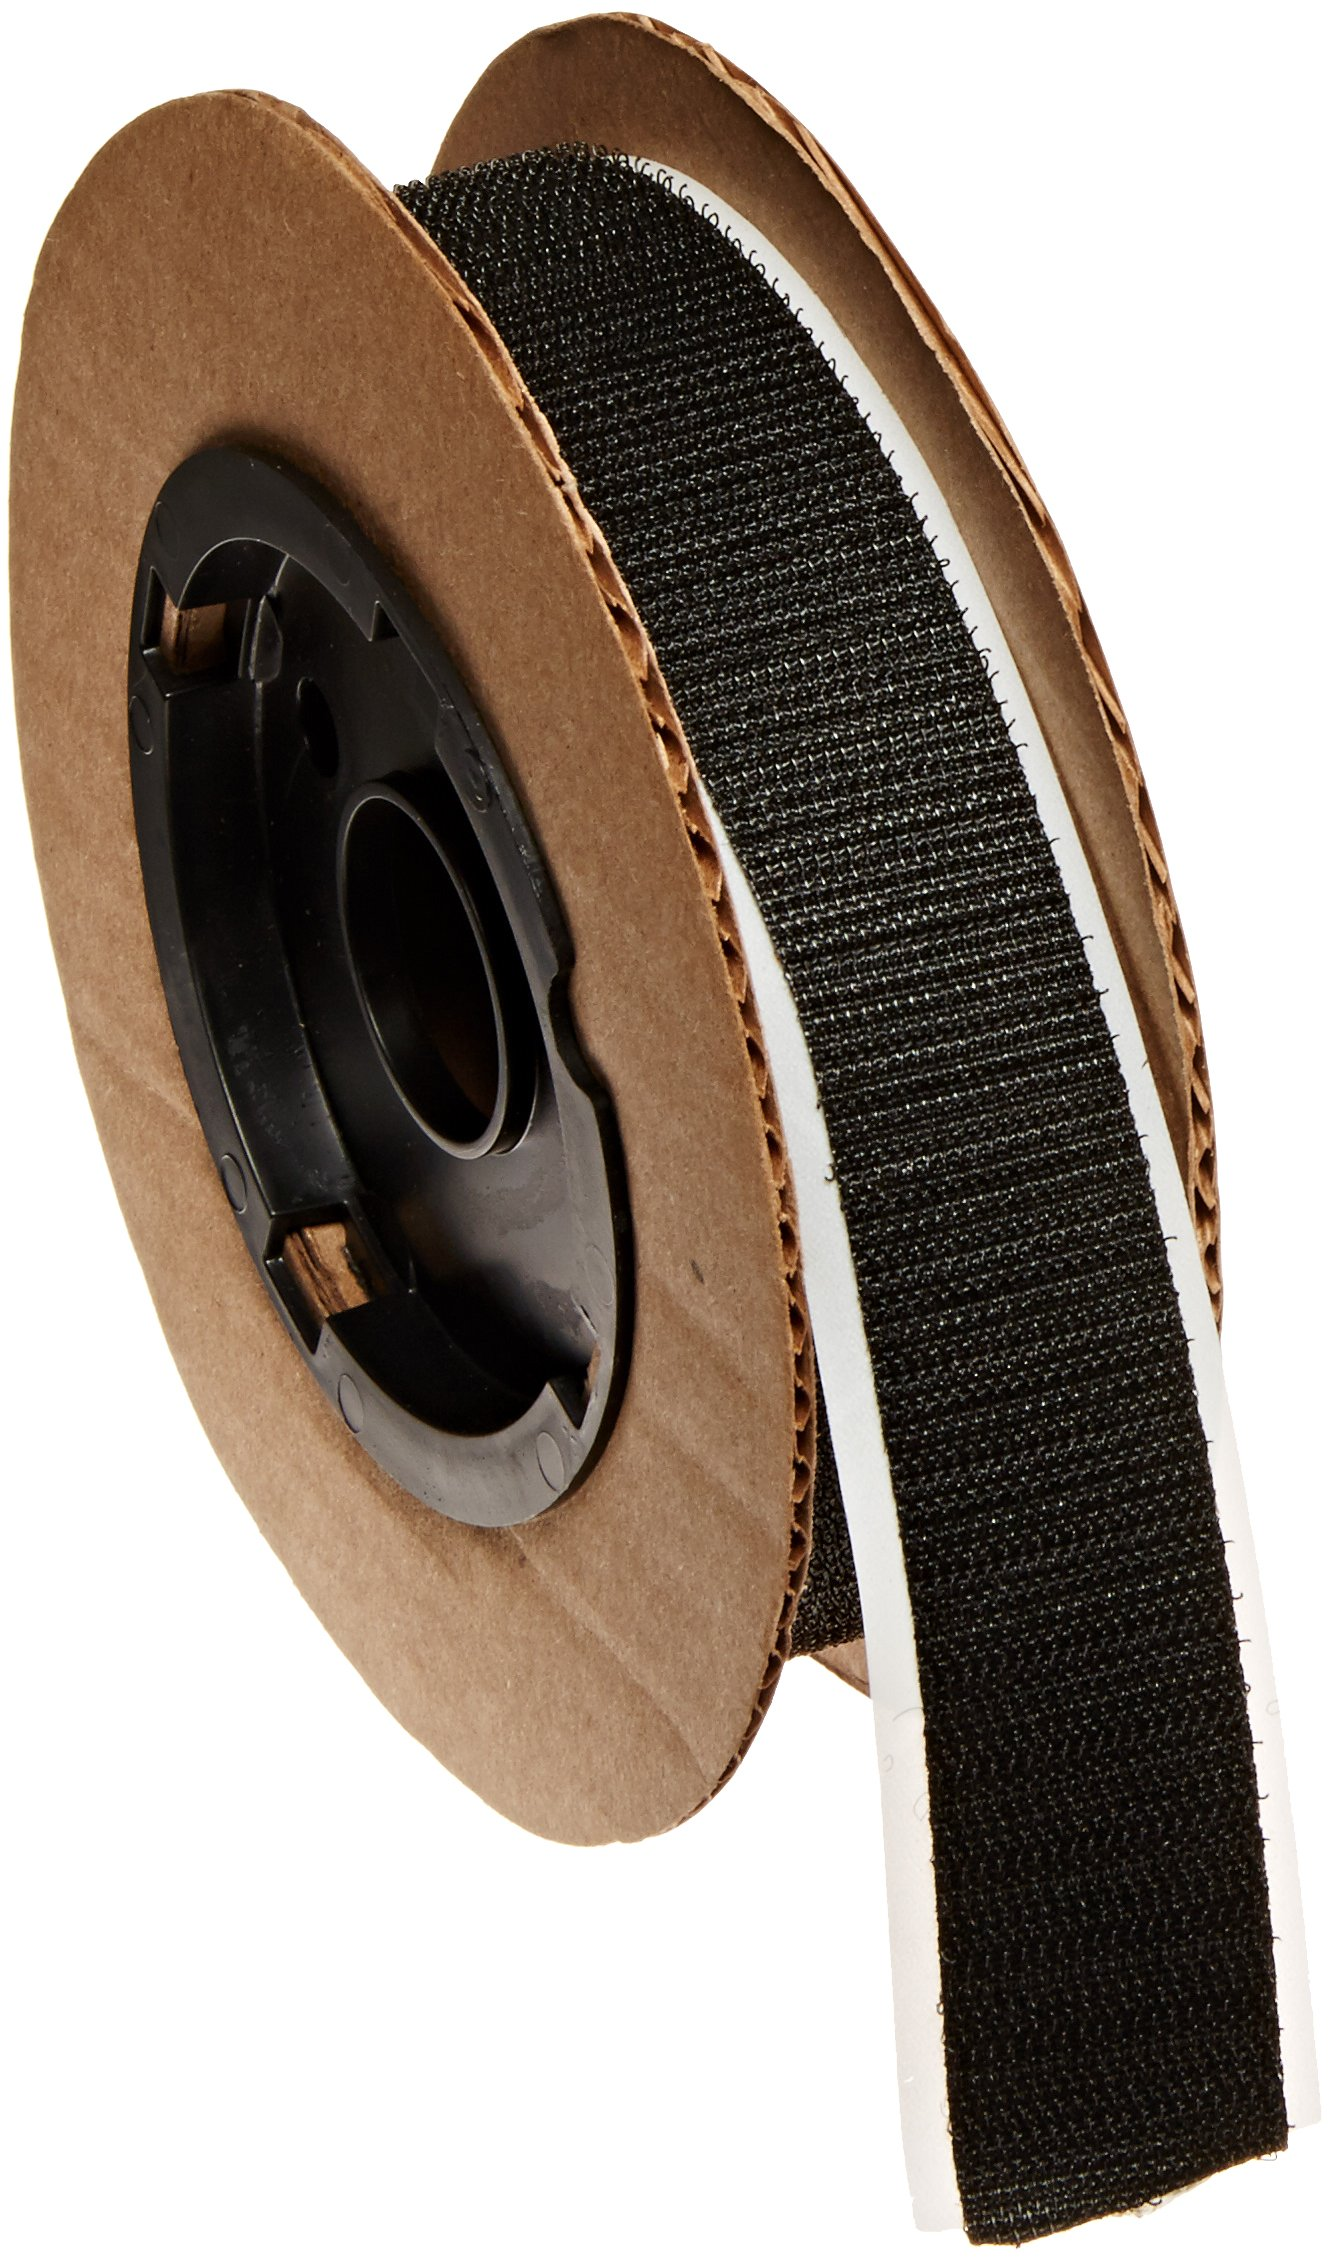 VELCRO 3804-SAT-PSA/H Black Woven Nylon Hook 88, 0132 Adhesive Backed, 1'' Wide, 10' Length